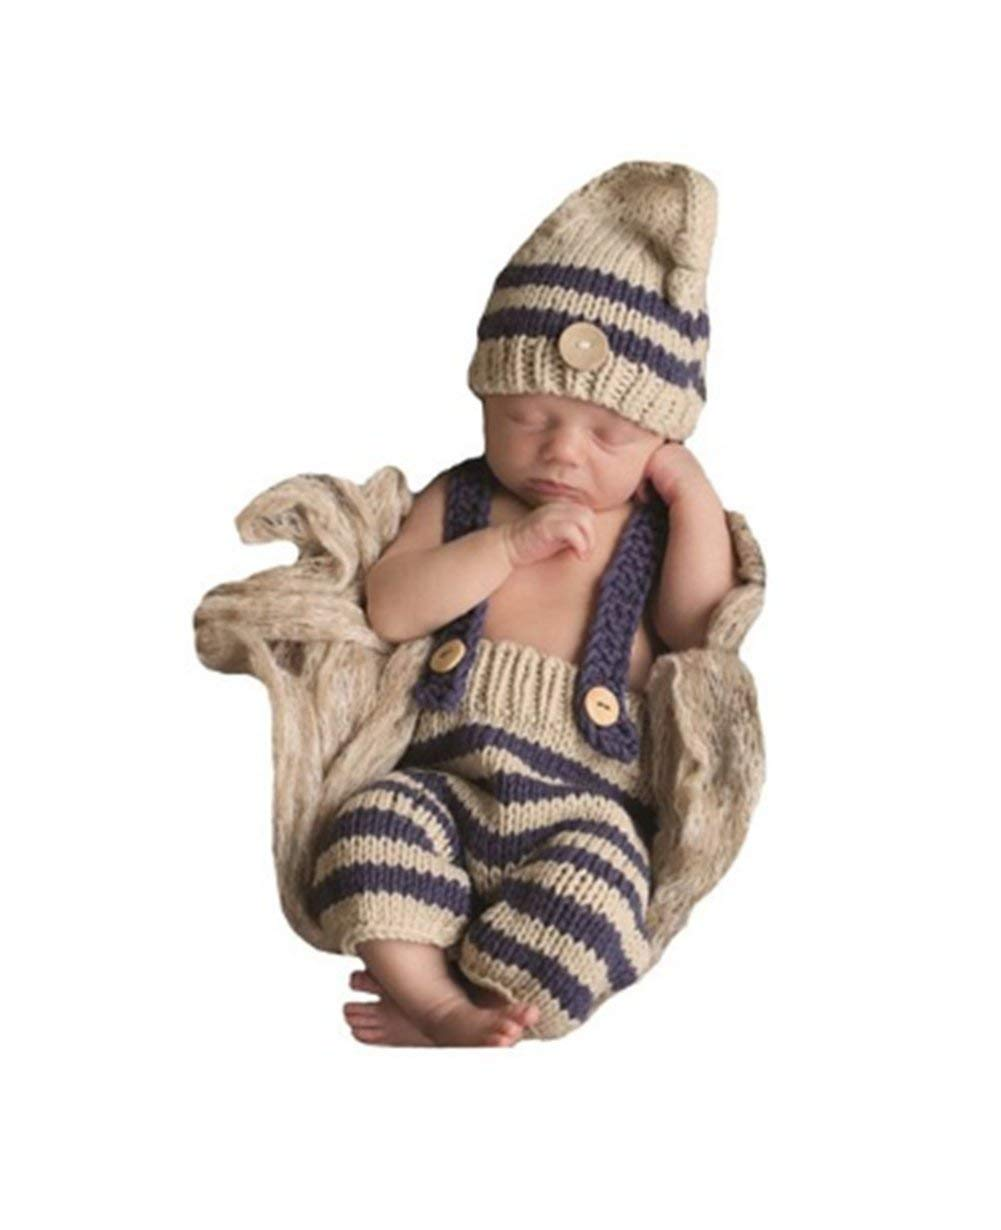 149b1fc1015 Buy Eyourhappy Baby Newborn Handmade Crochet Knitted Photography Props Boy  Stripe Hat Pants Overalls in Cheap Price on m.alibaba.com